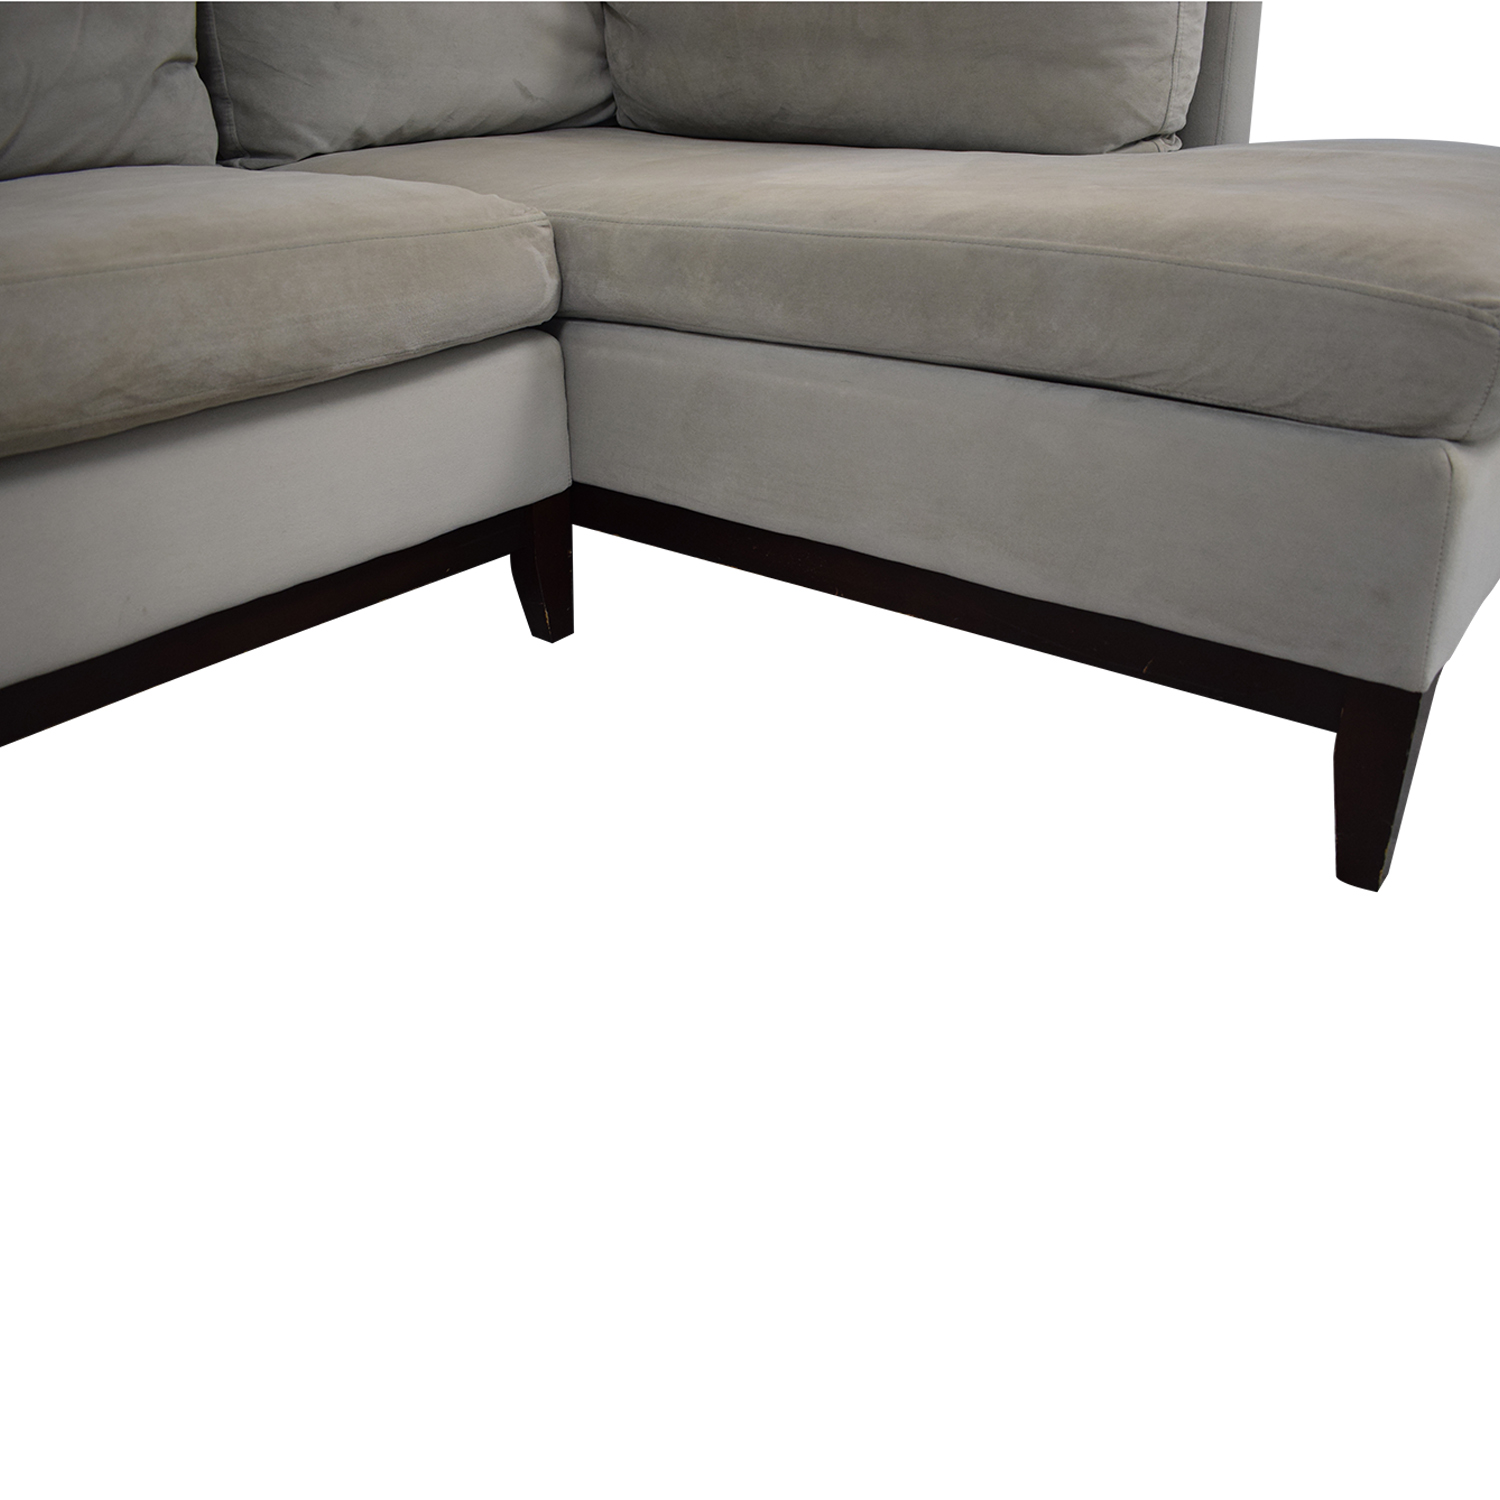 West Elm West Elm Blake Chaise Sectional Sofa price